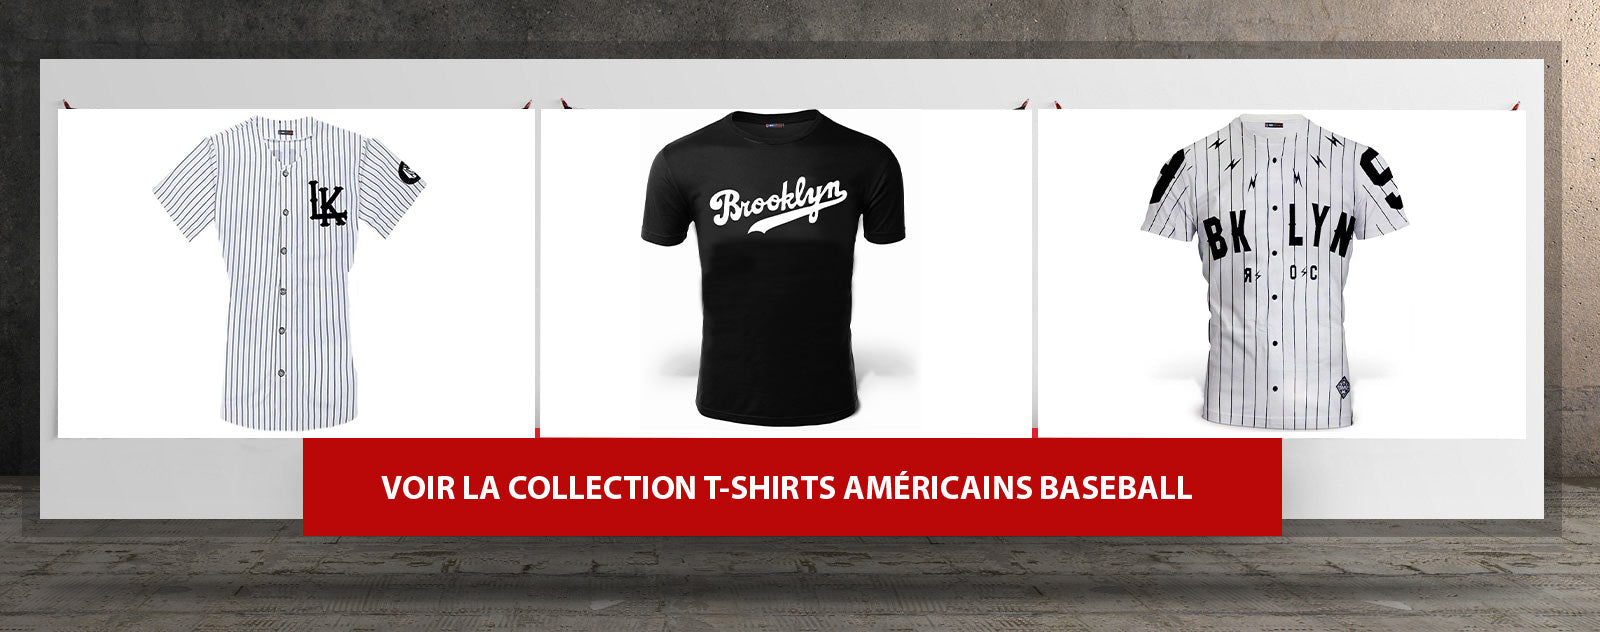 t shirts americains baseball